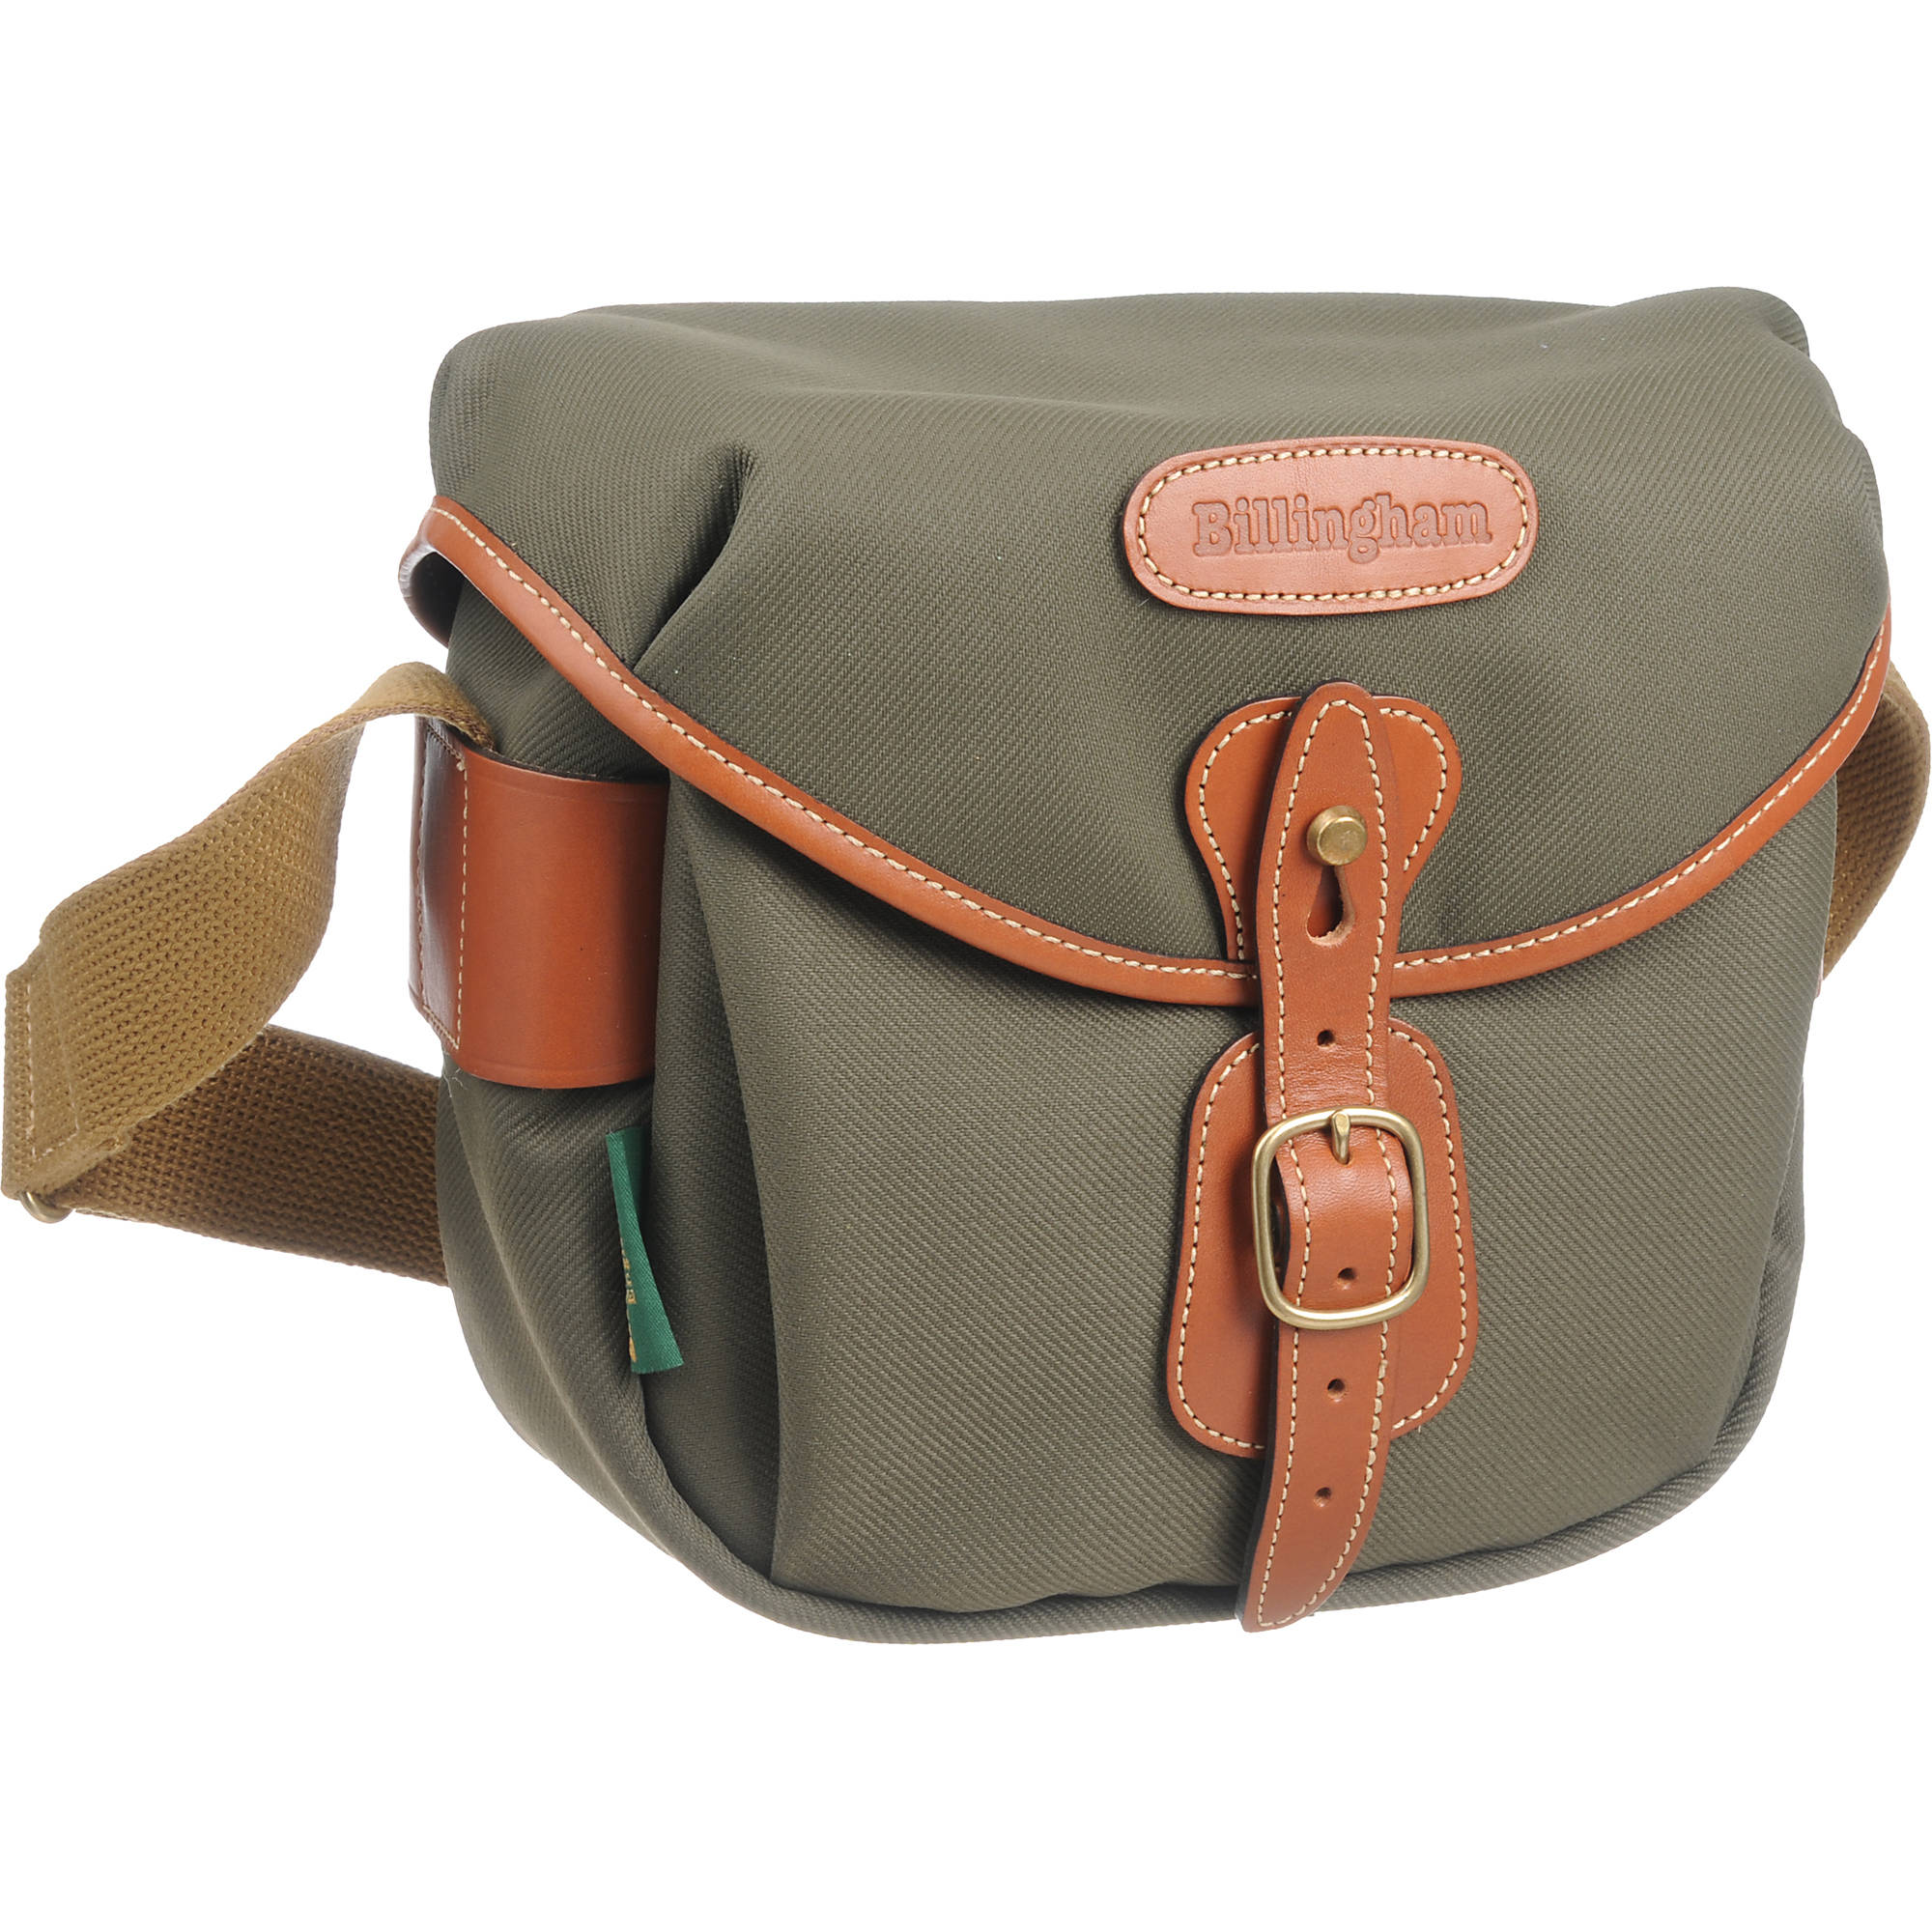 Billingham Hadley Digital Camera Shoulder Bag 15